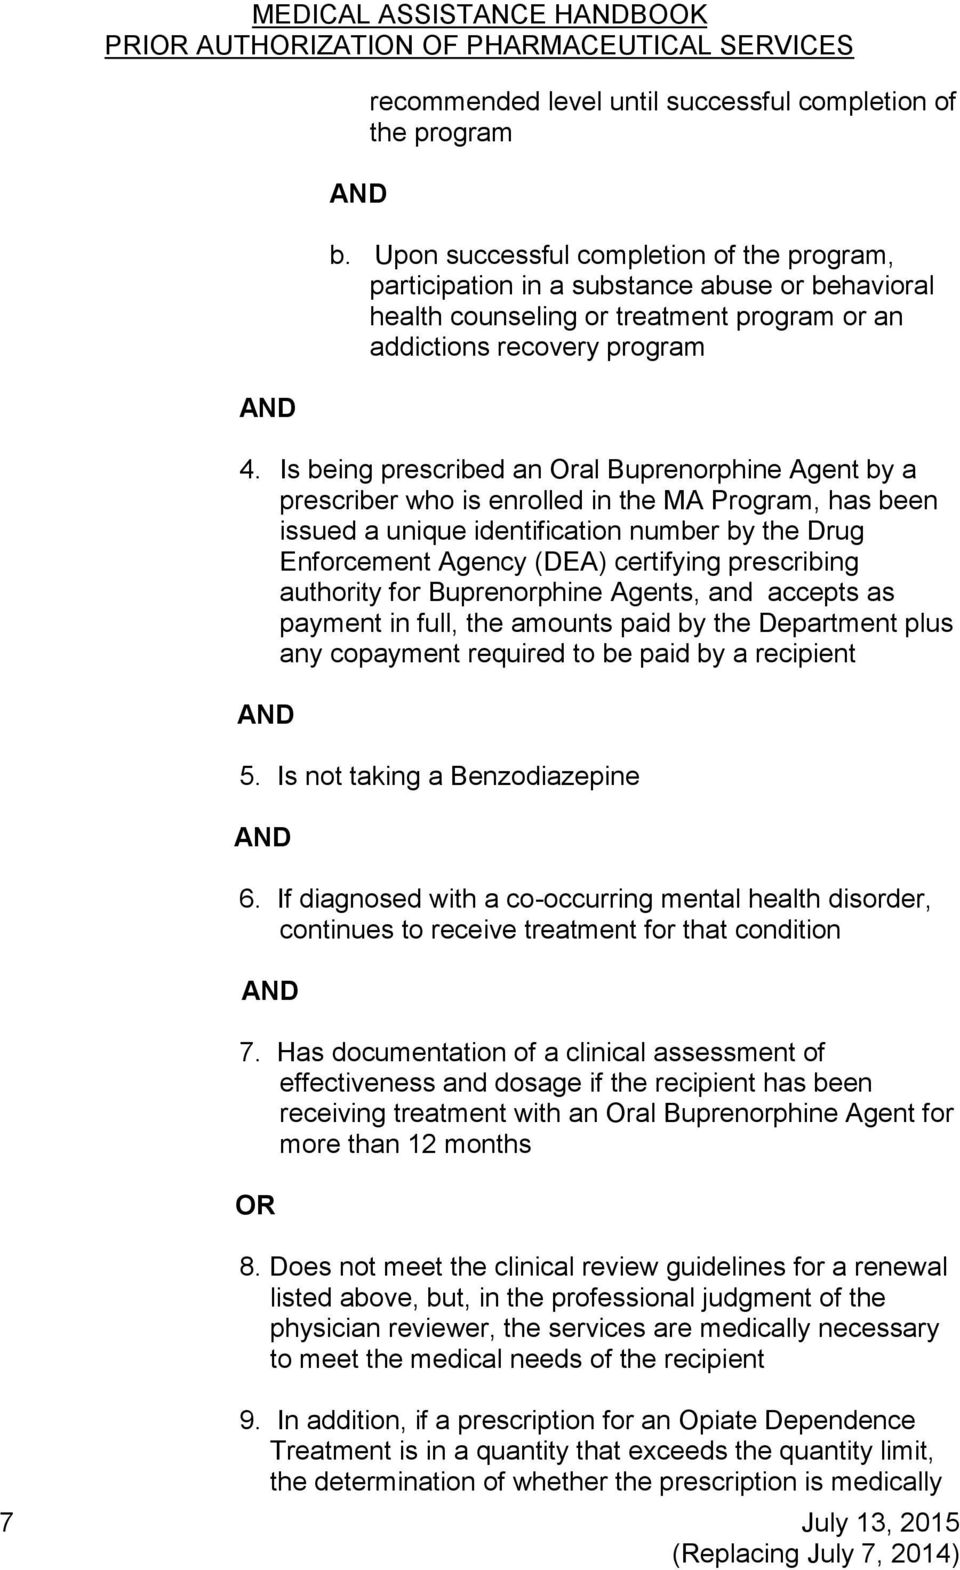 Is being prescribed an Oral Buprenorphine Agent by a prescriber who is enrolled in the MA Program, has been issued a unique identification number by the Drug Enforcement Agency (DEA) certifying